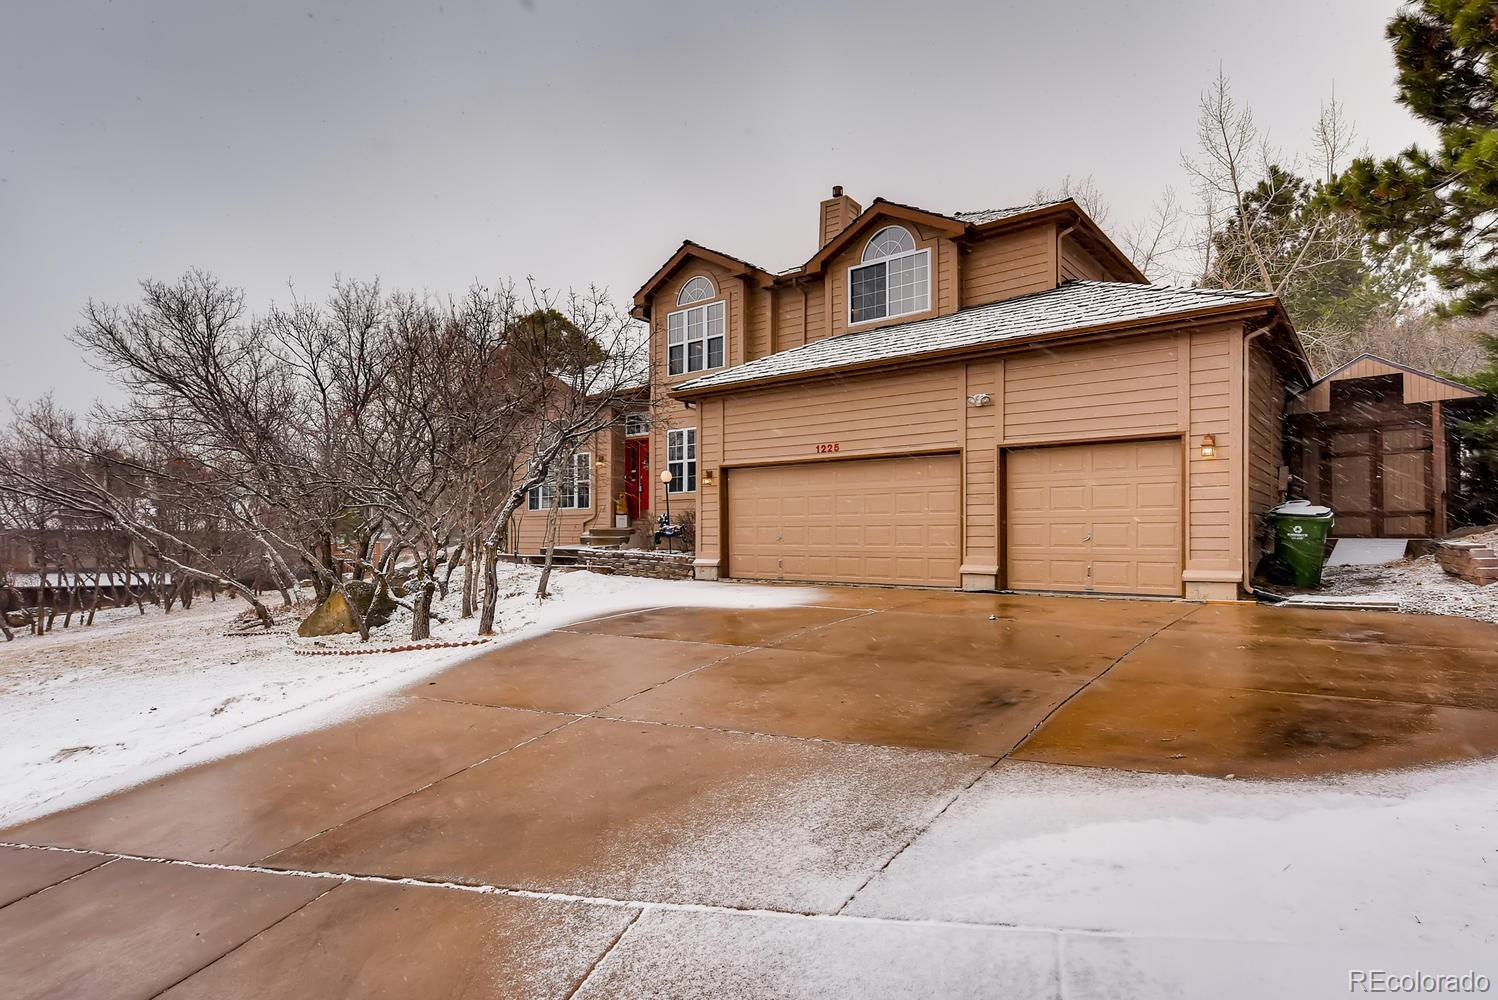 1225 Popes Valley Drive, Colorado Springs, CO 80919 - Colorado Springs, CO real estate listing